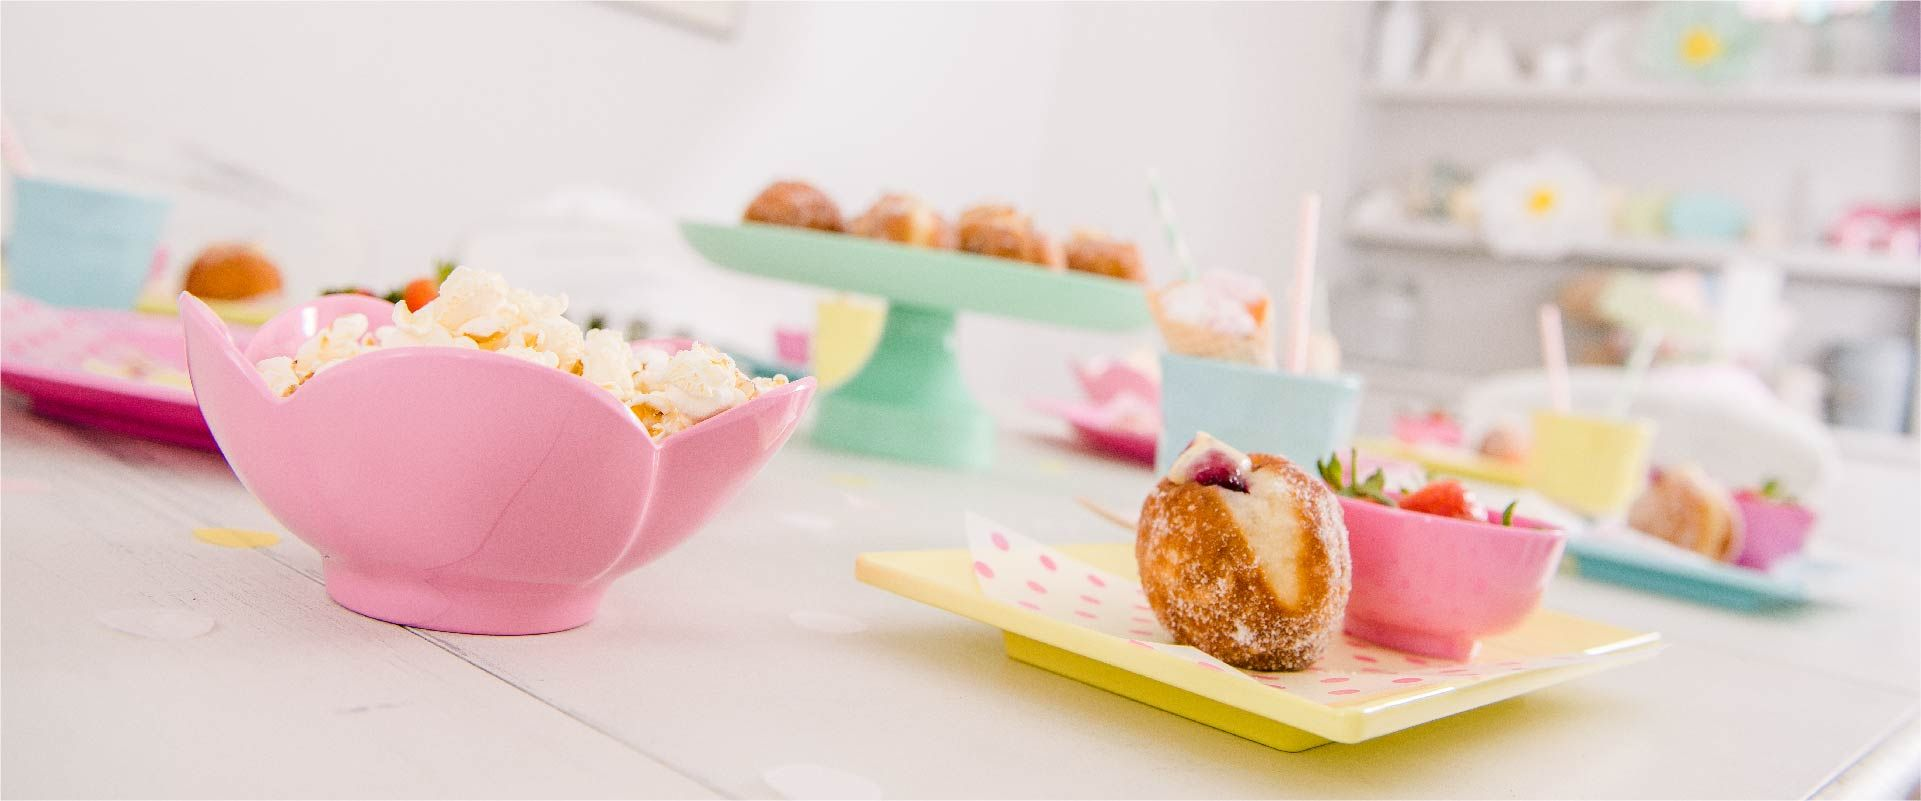 Hire Pastel Party Tableware And Host An Ecofriendly Party Wave Goodbye To Single Use Party Products With These Stylishly Sustainable Altern Kids Party Tableware